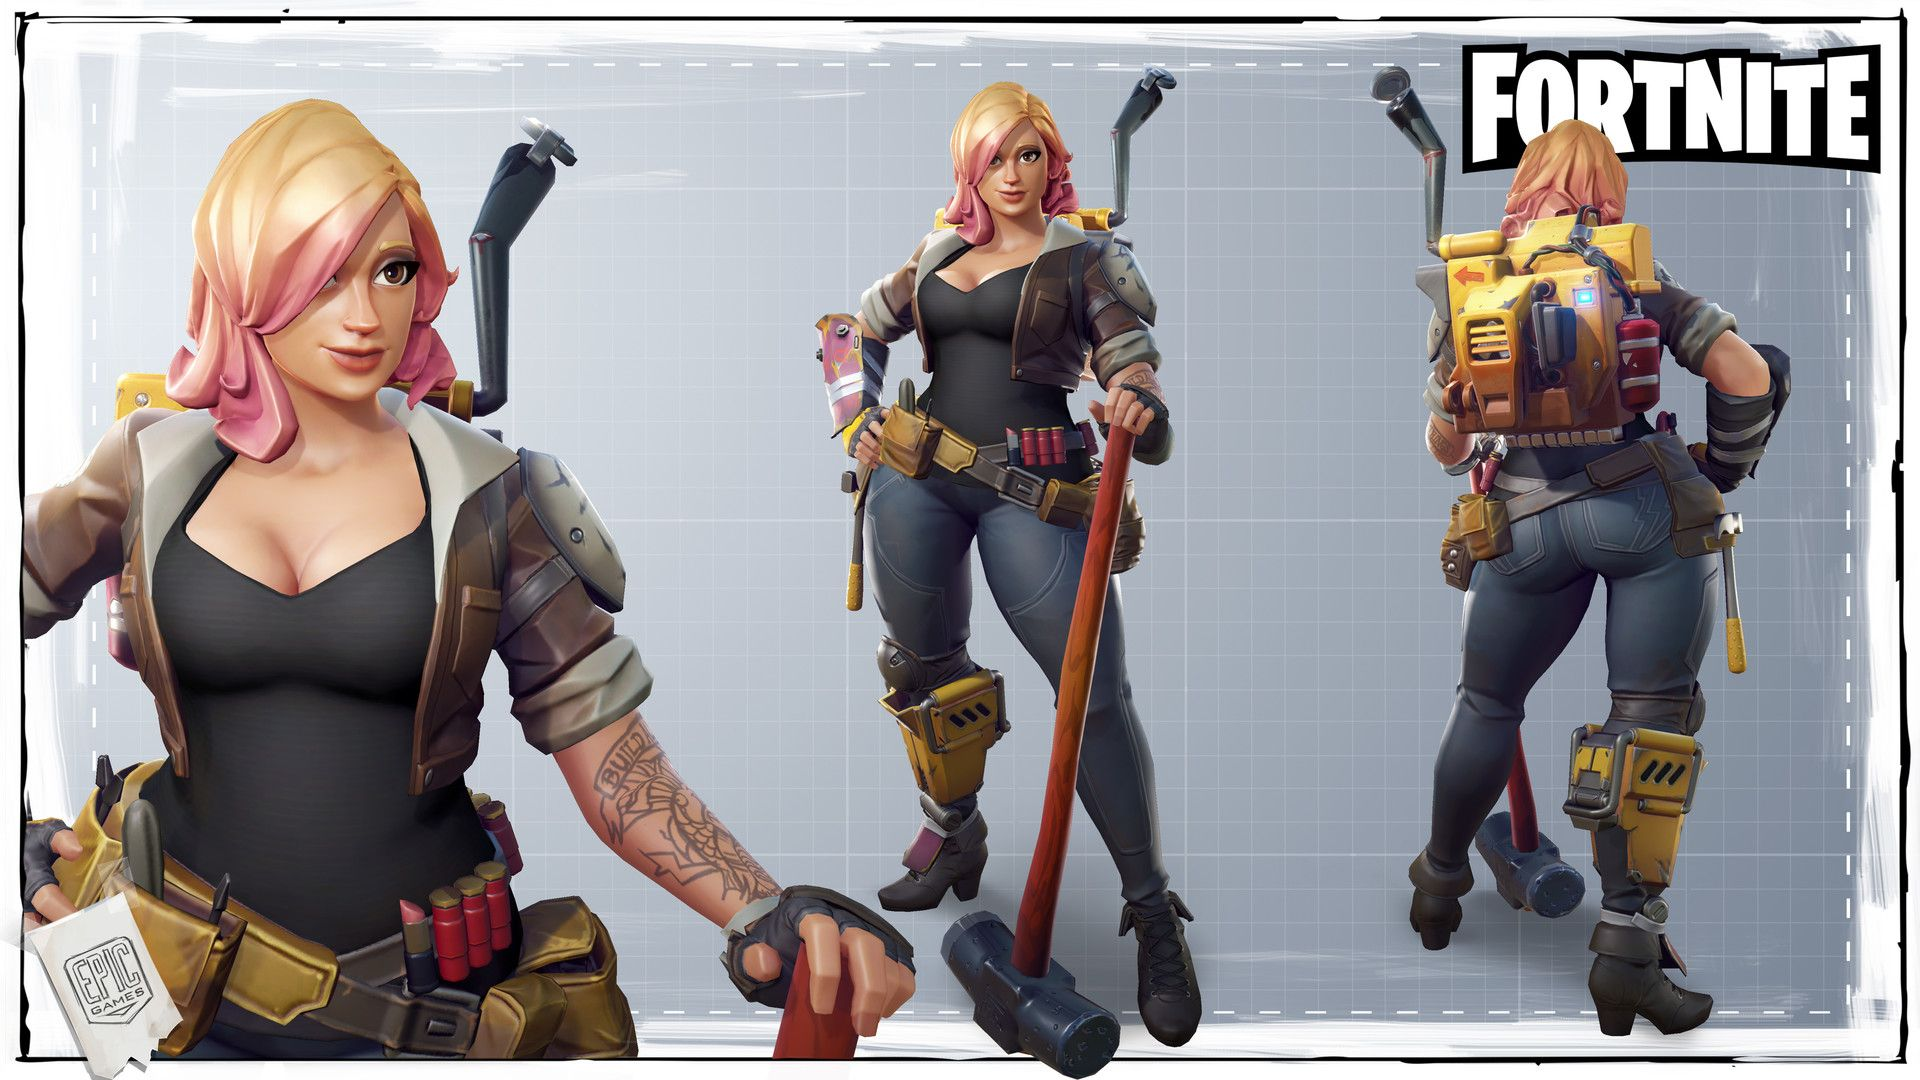 This is the female constructor model I created for Fortnite